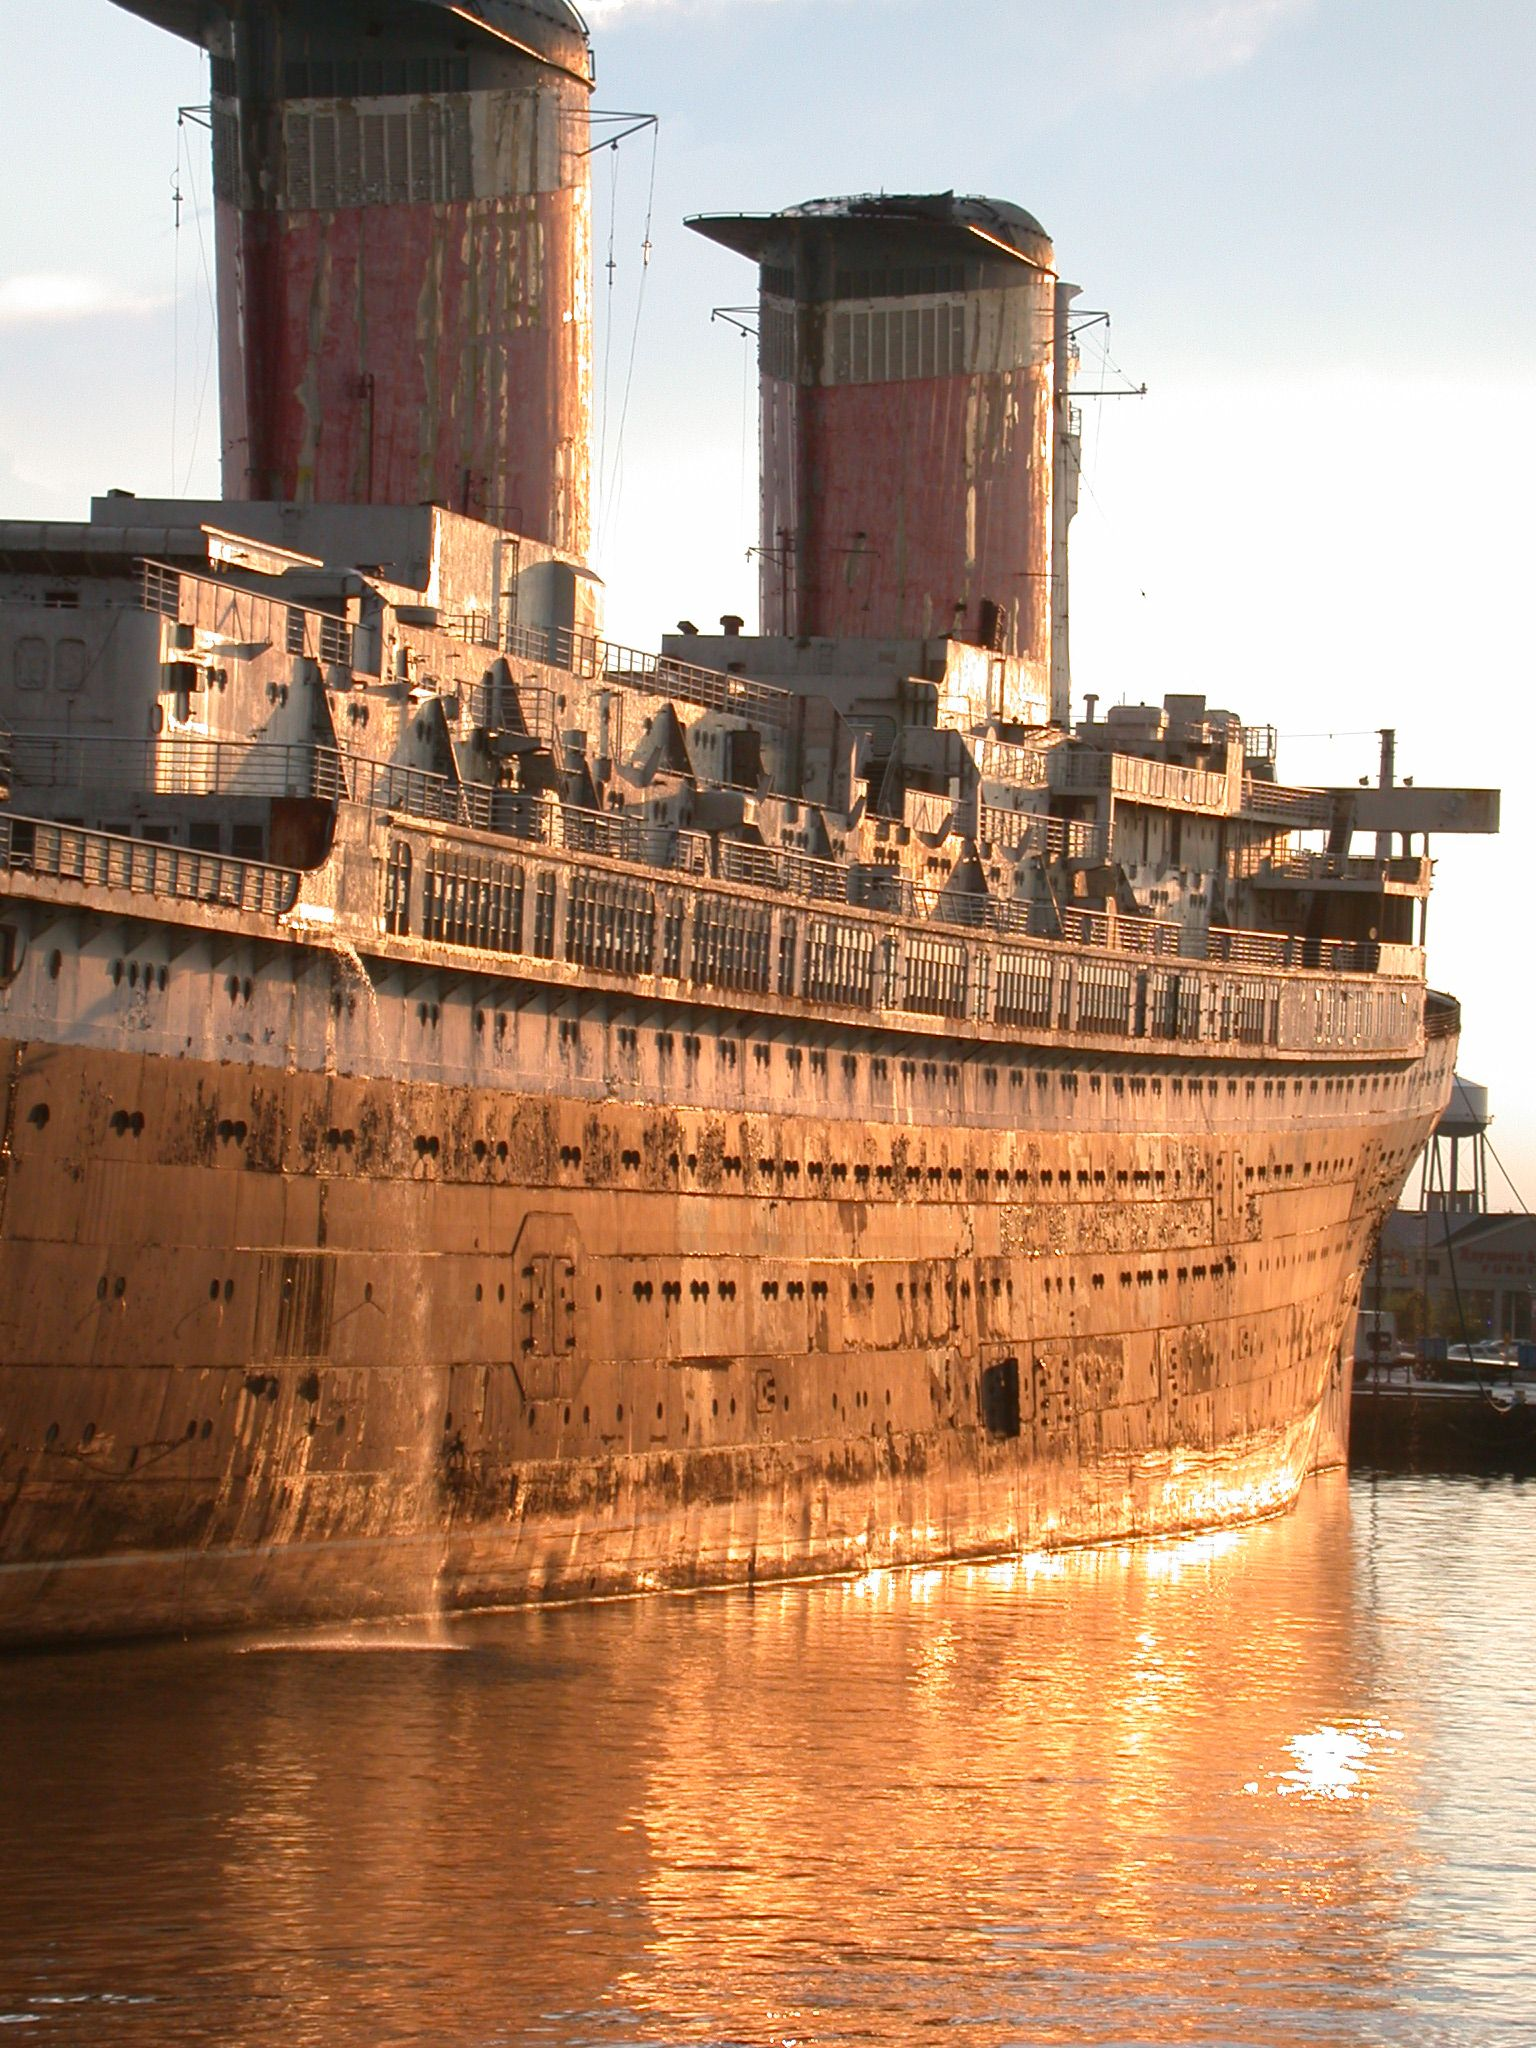 Ss United States Engine Room: SS United States- Built In 1952 And Made Out Of The Most